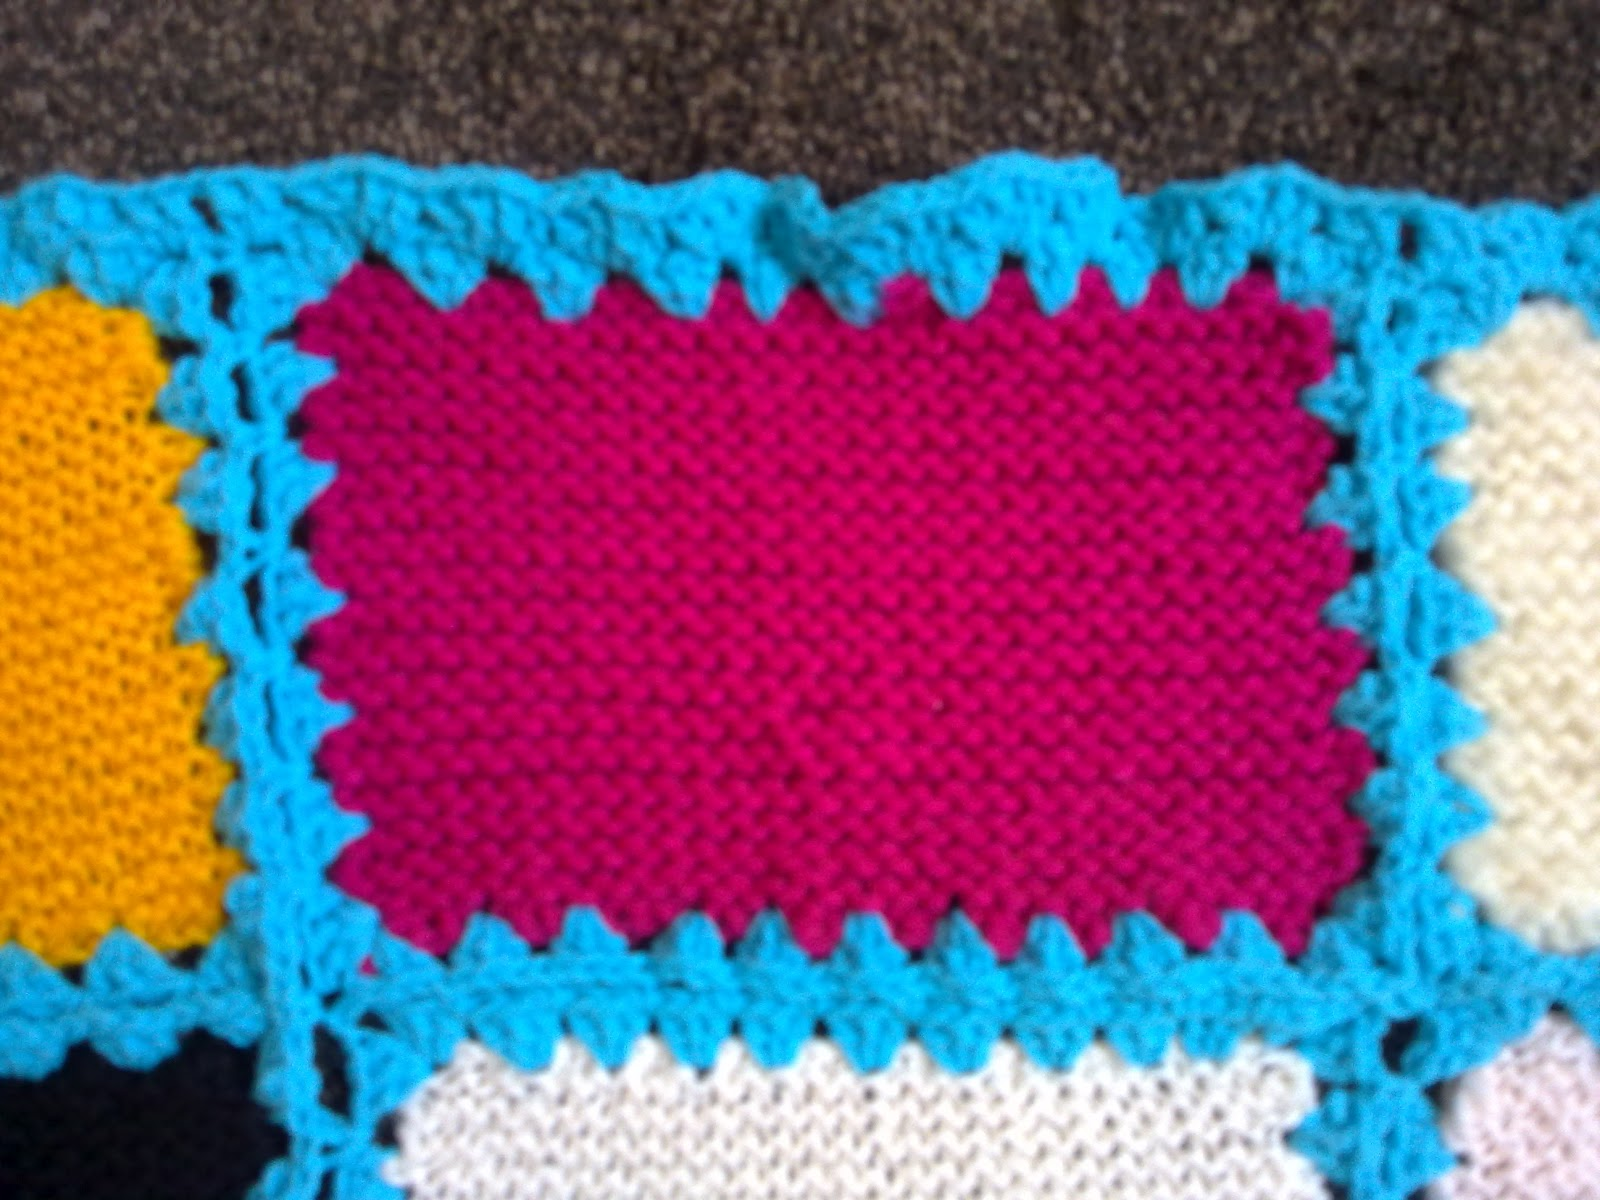 Mums Simply Living Blog: Crocheting knitted squares together